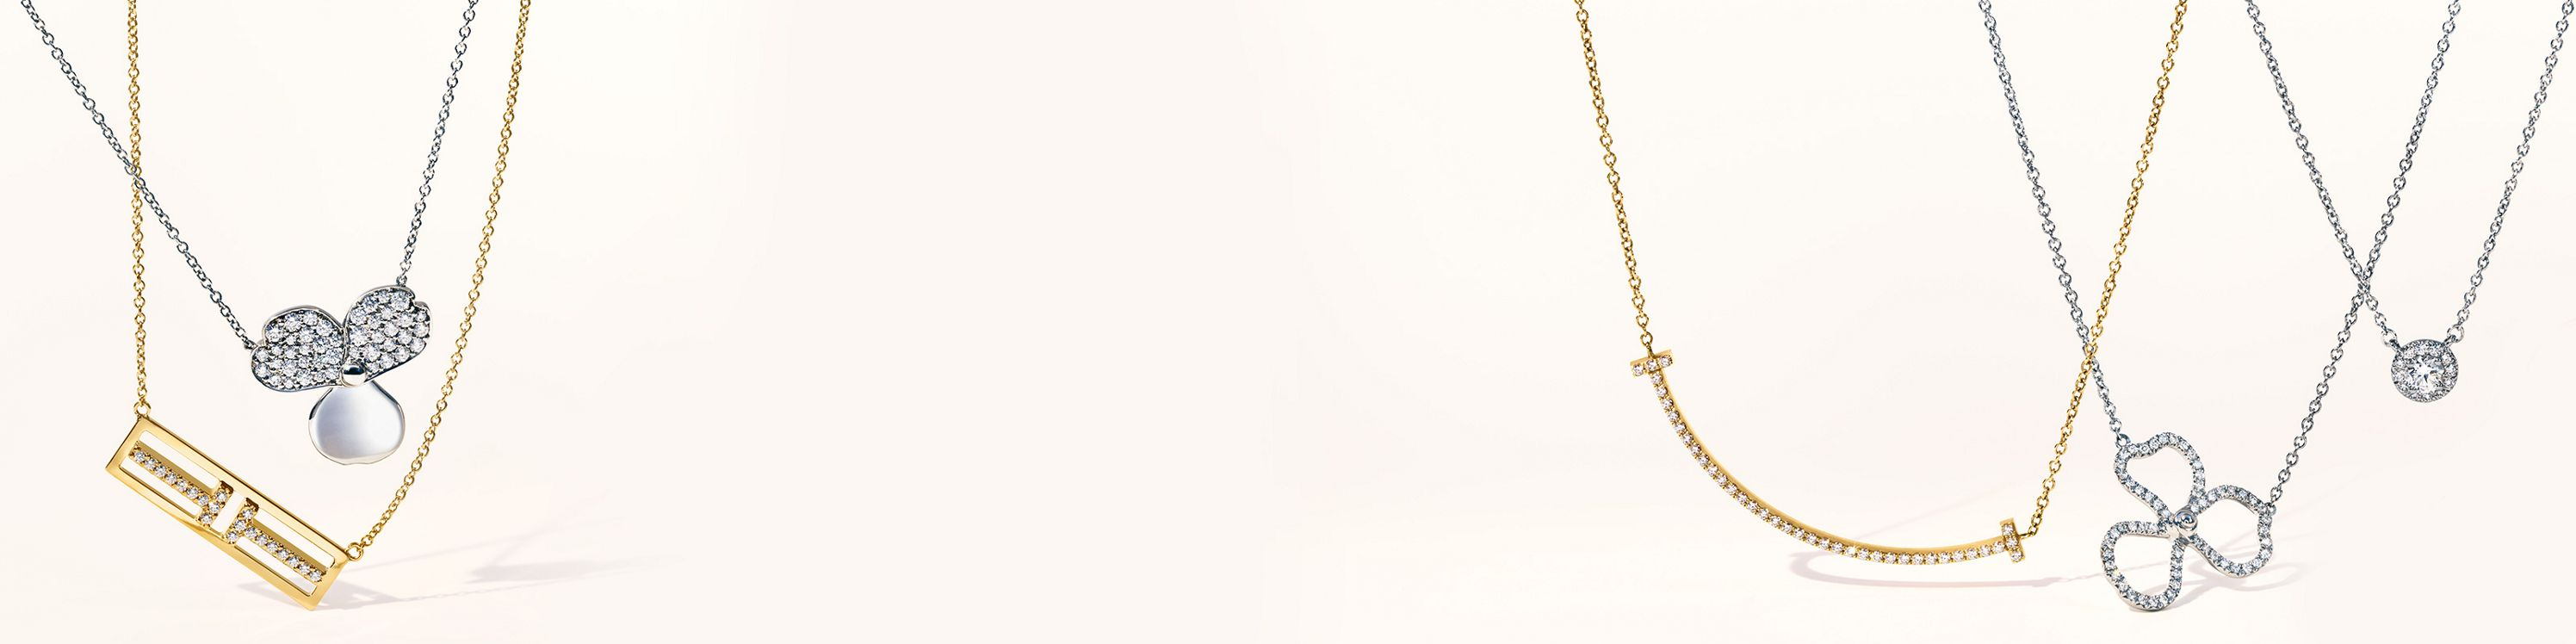 9d48f2f290 Necklaces & Pendants | Tiffany & Co.